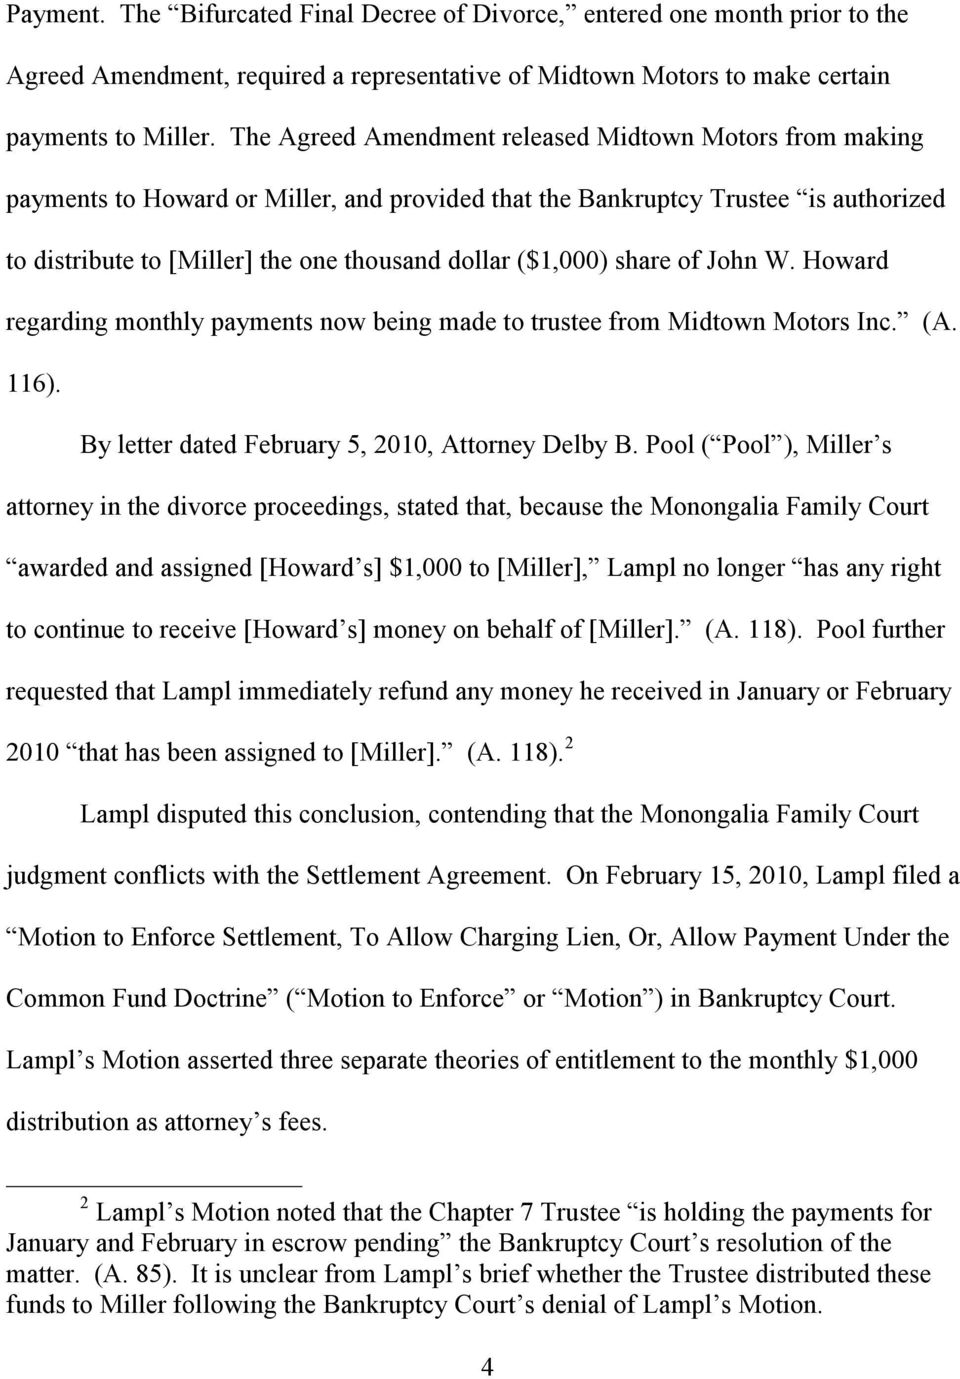 ($1,000) share of John W. Howard regarding monthly payments now being made to trustee from Midtown Motors Inc. (A. 116). By letter dated February 5, 2010, Attorney Delby B.